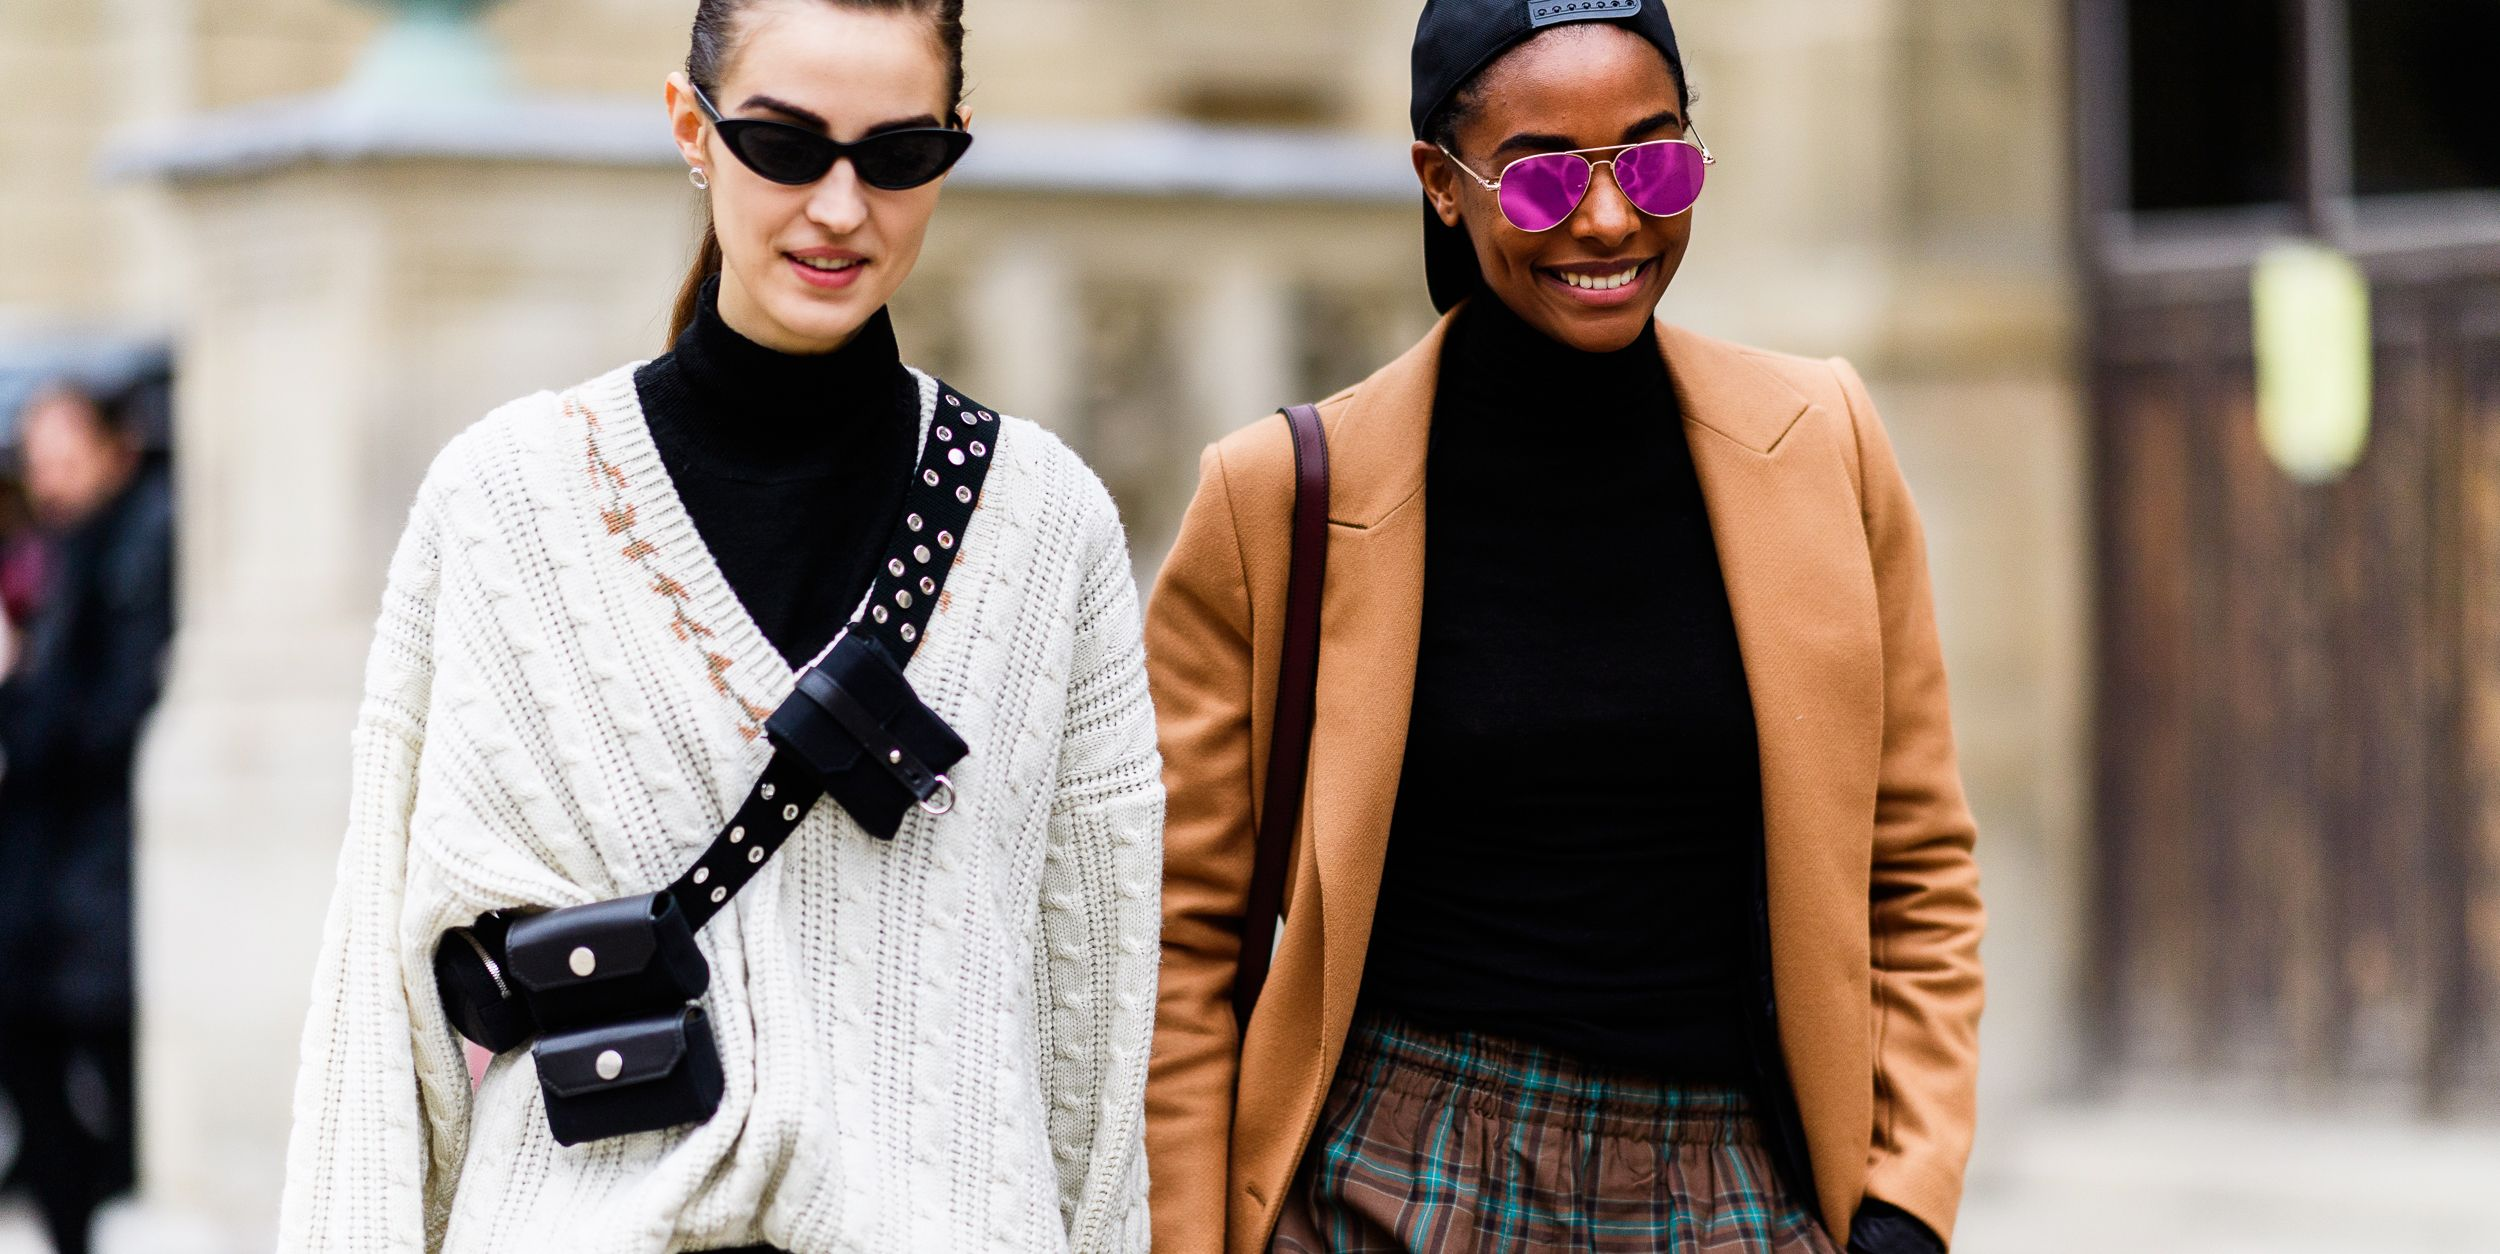 21 Classic Sunglasses for Every Face Shape